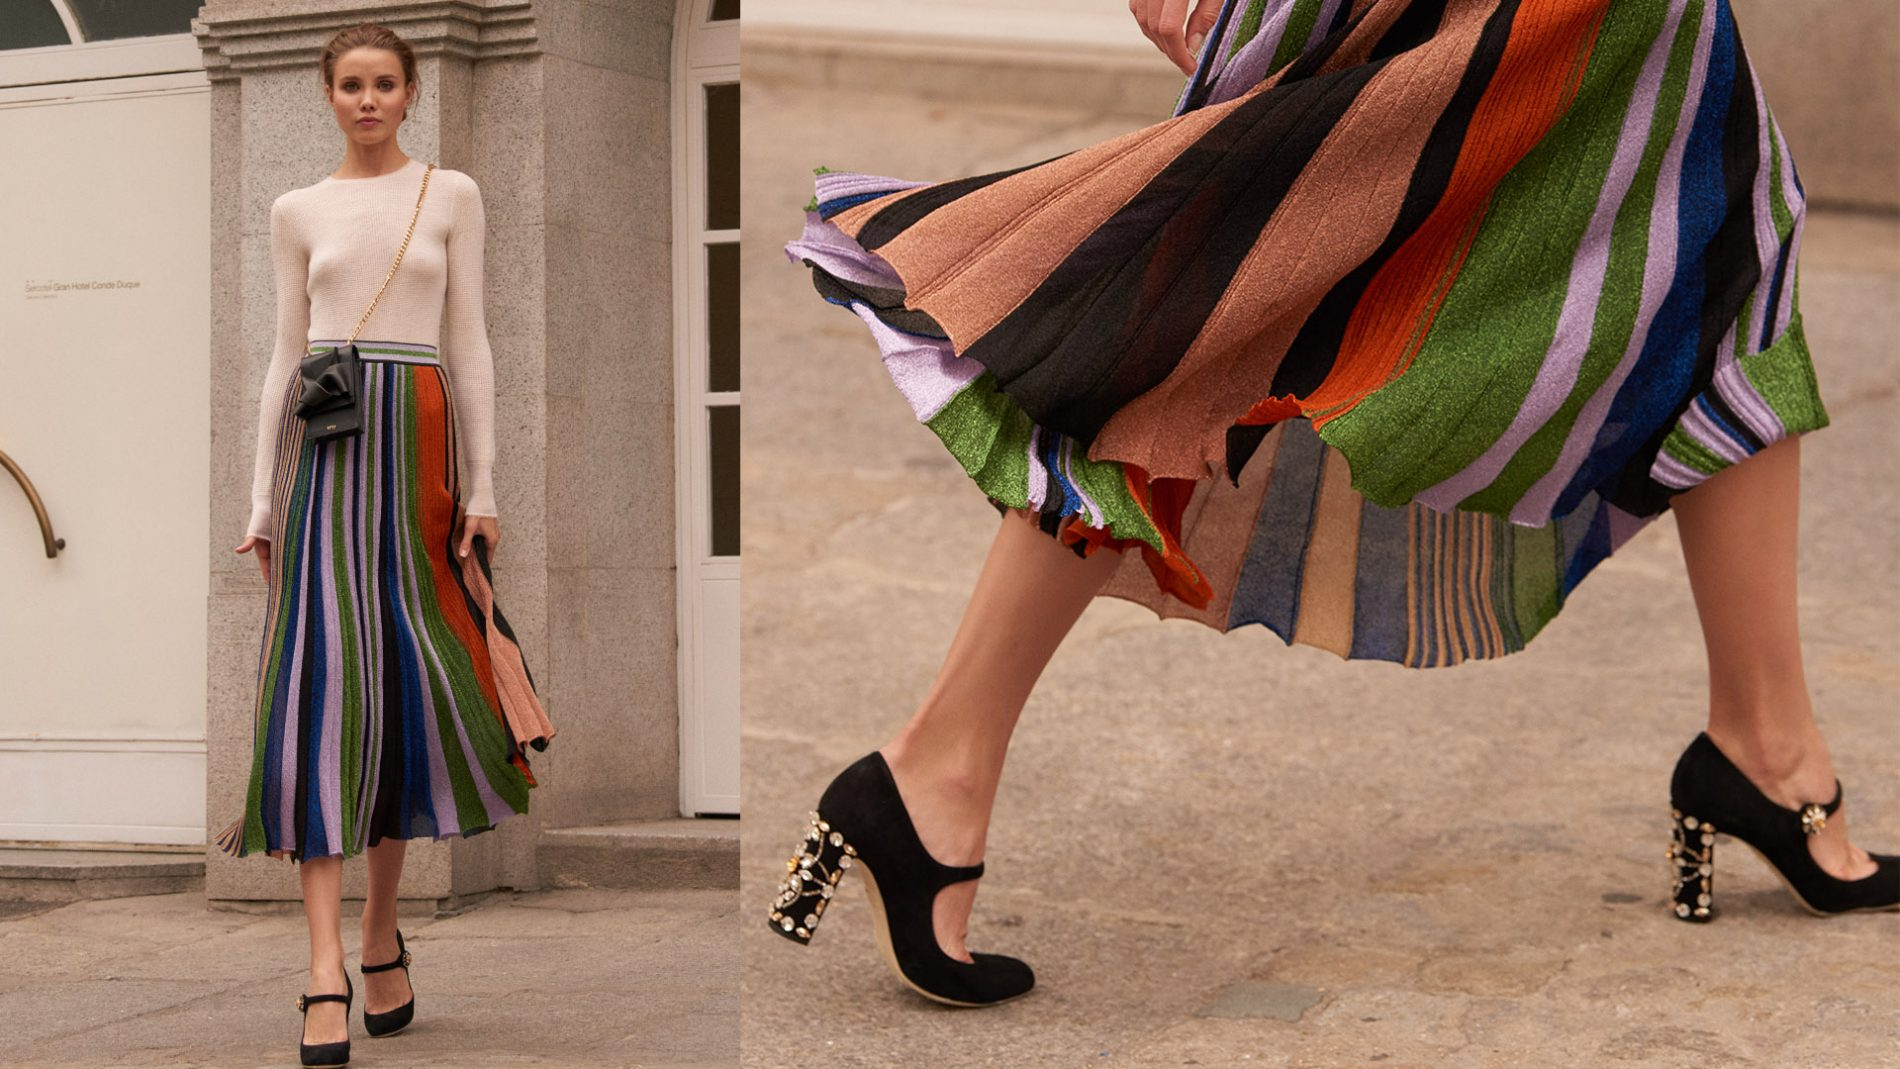 El Corte Inglés Ready-To-Wear Shoes Handbags Missoni N21 Dolce & Gabbana